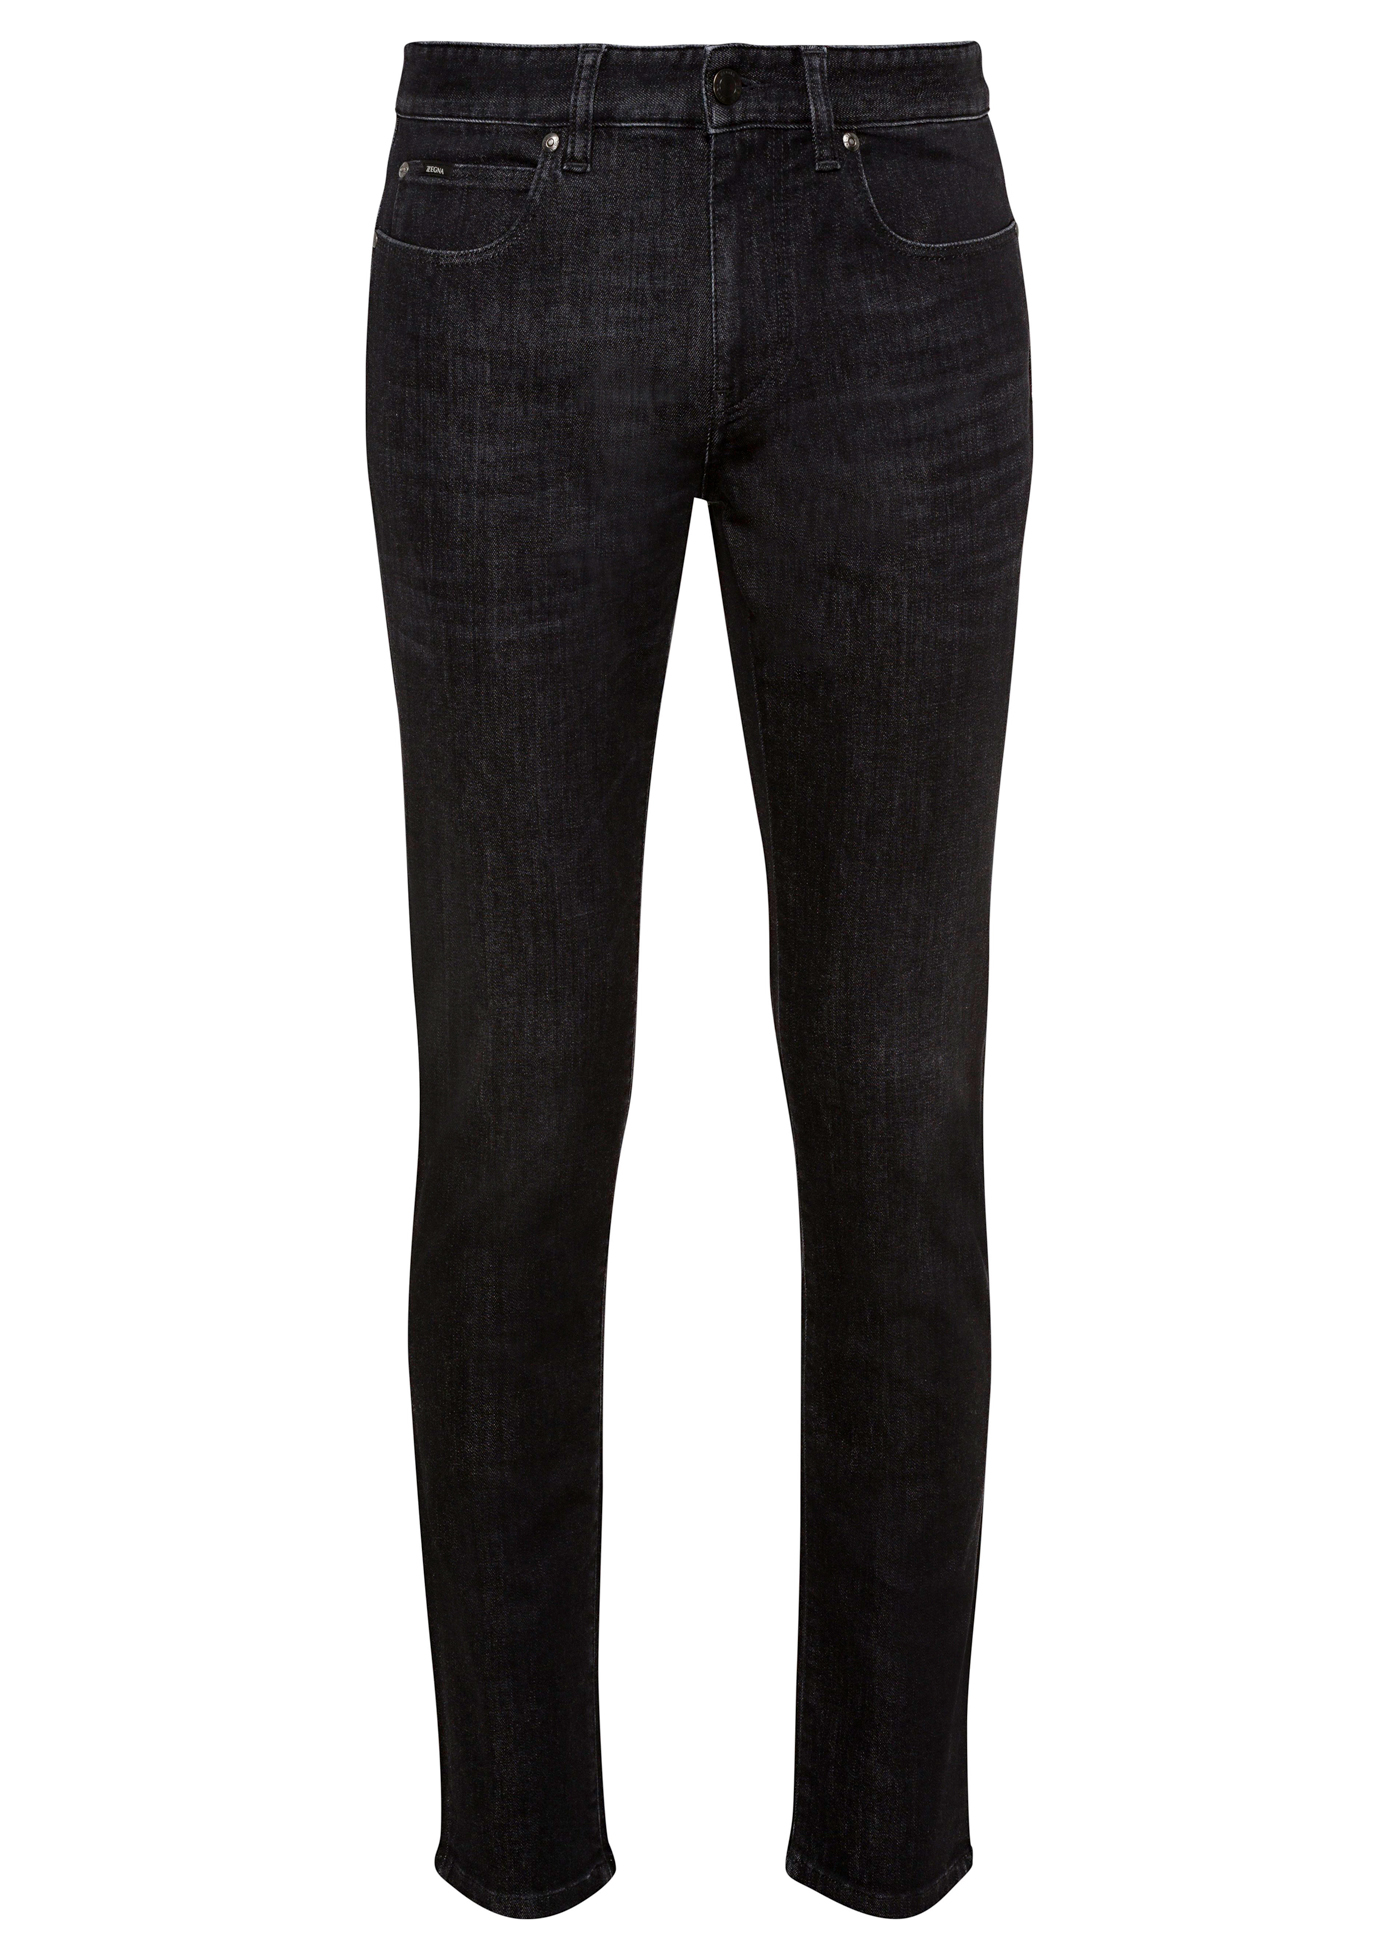 LUXE TWILL BLACK DENIM image number 0